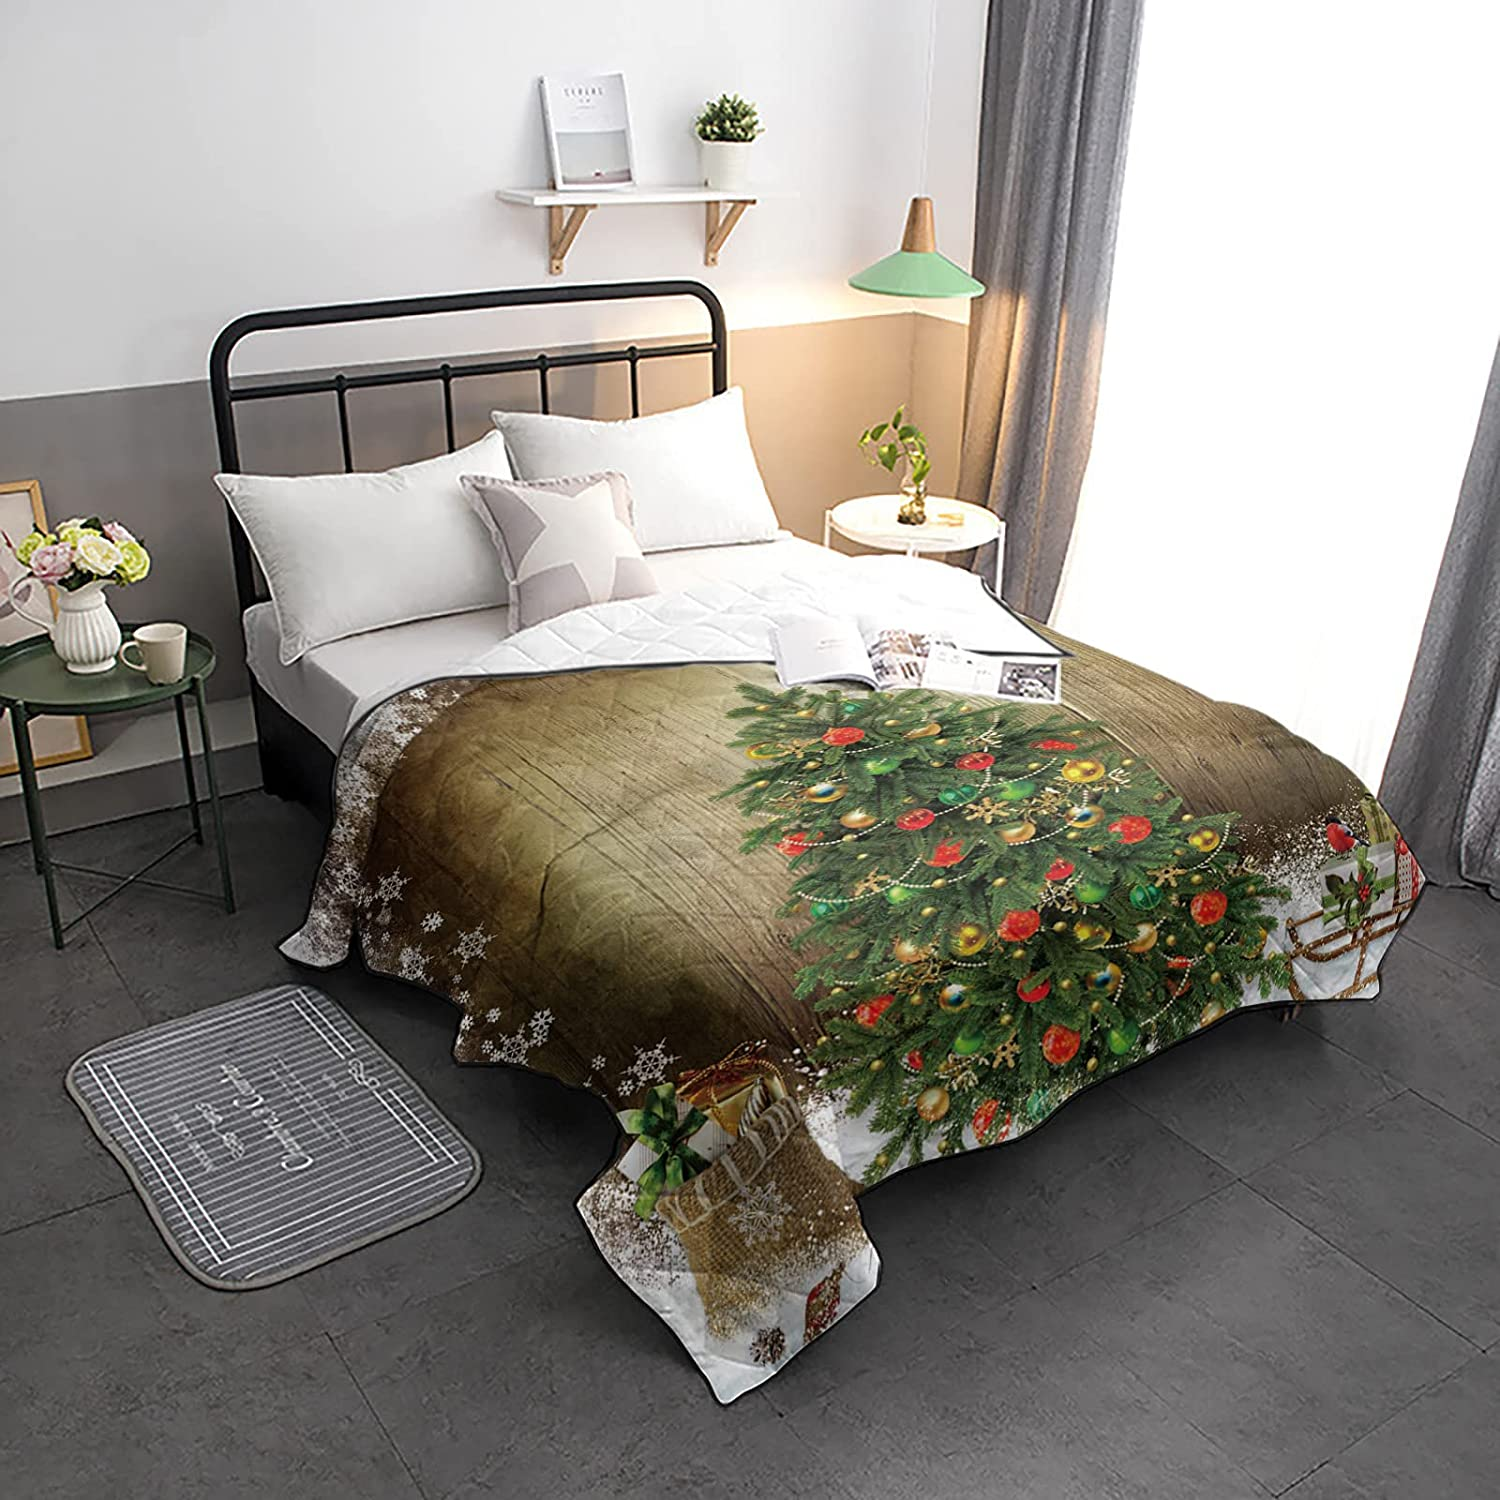 HELLOWINK Selling SEAL limited product Bedding Comforter Duvet Size-Soft Lighweight Twin Qu